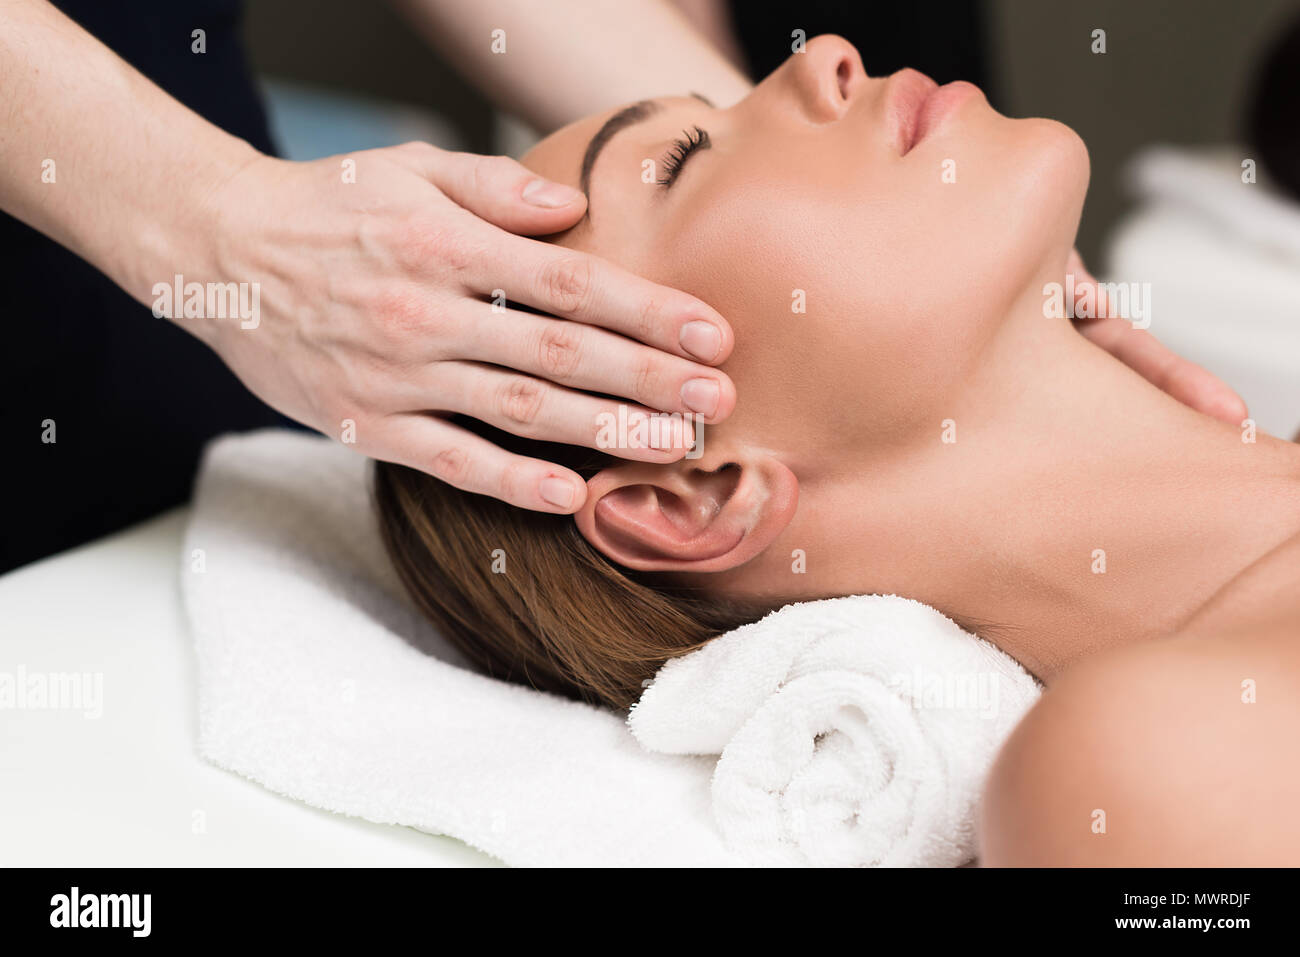 young woman relaxing and having head massage in spa salon - Stock Image